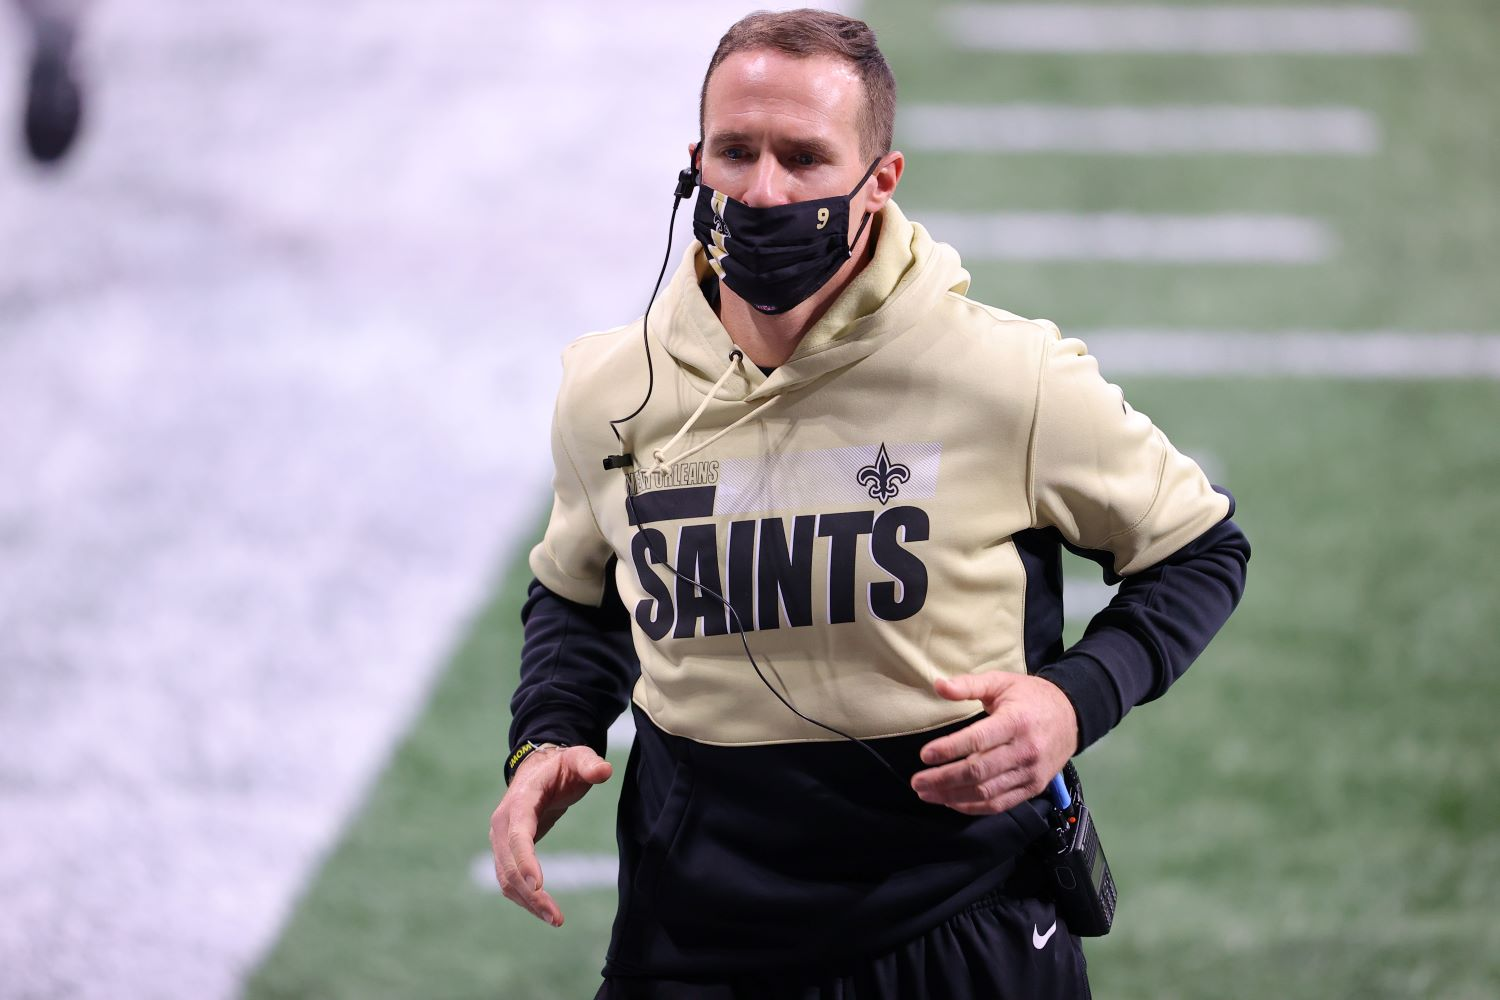 Drew Brees may not be returning to the Saints lineup anytime soon based on Sean Payton's recent comments.